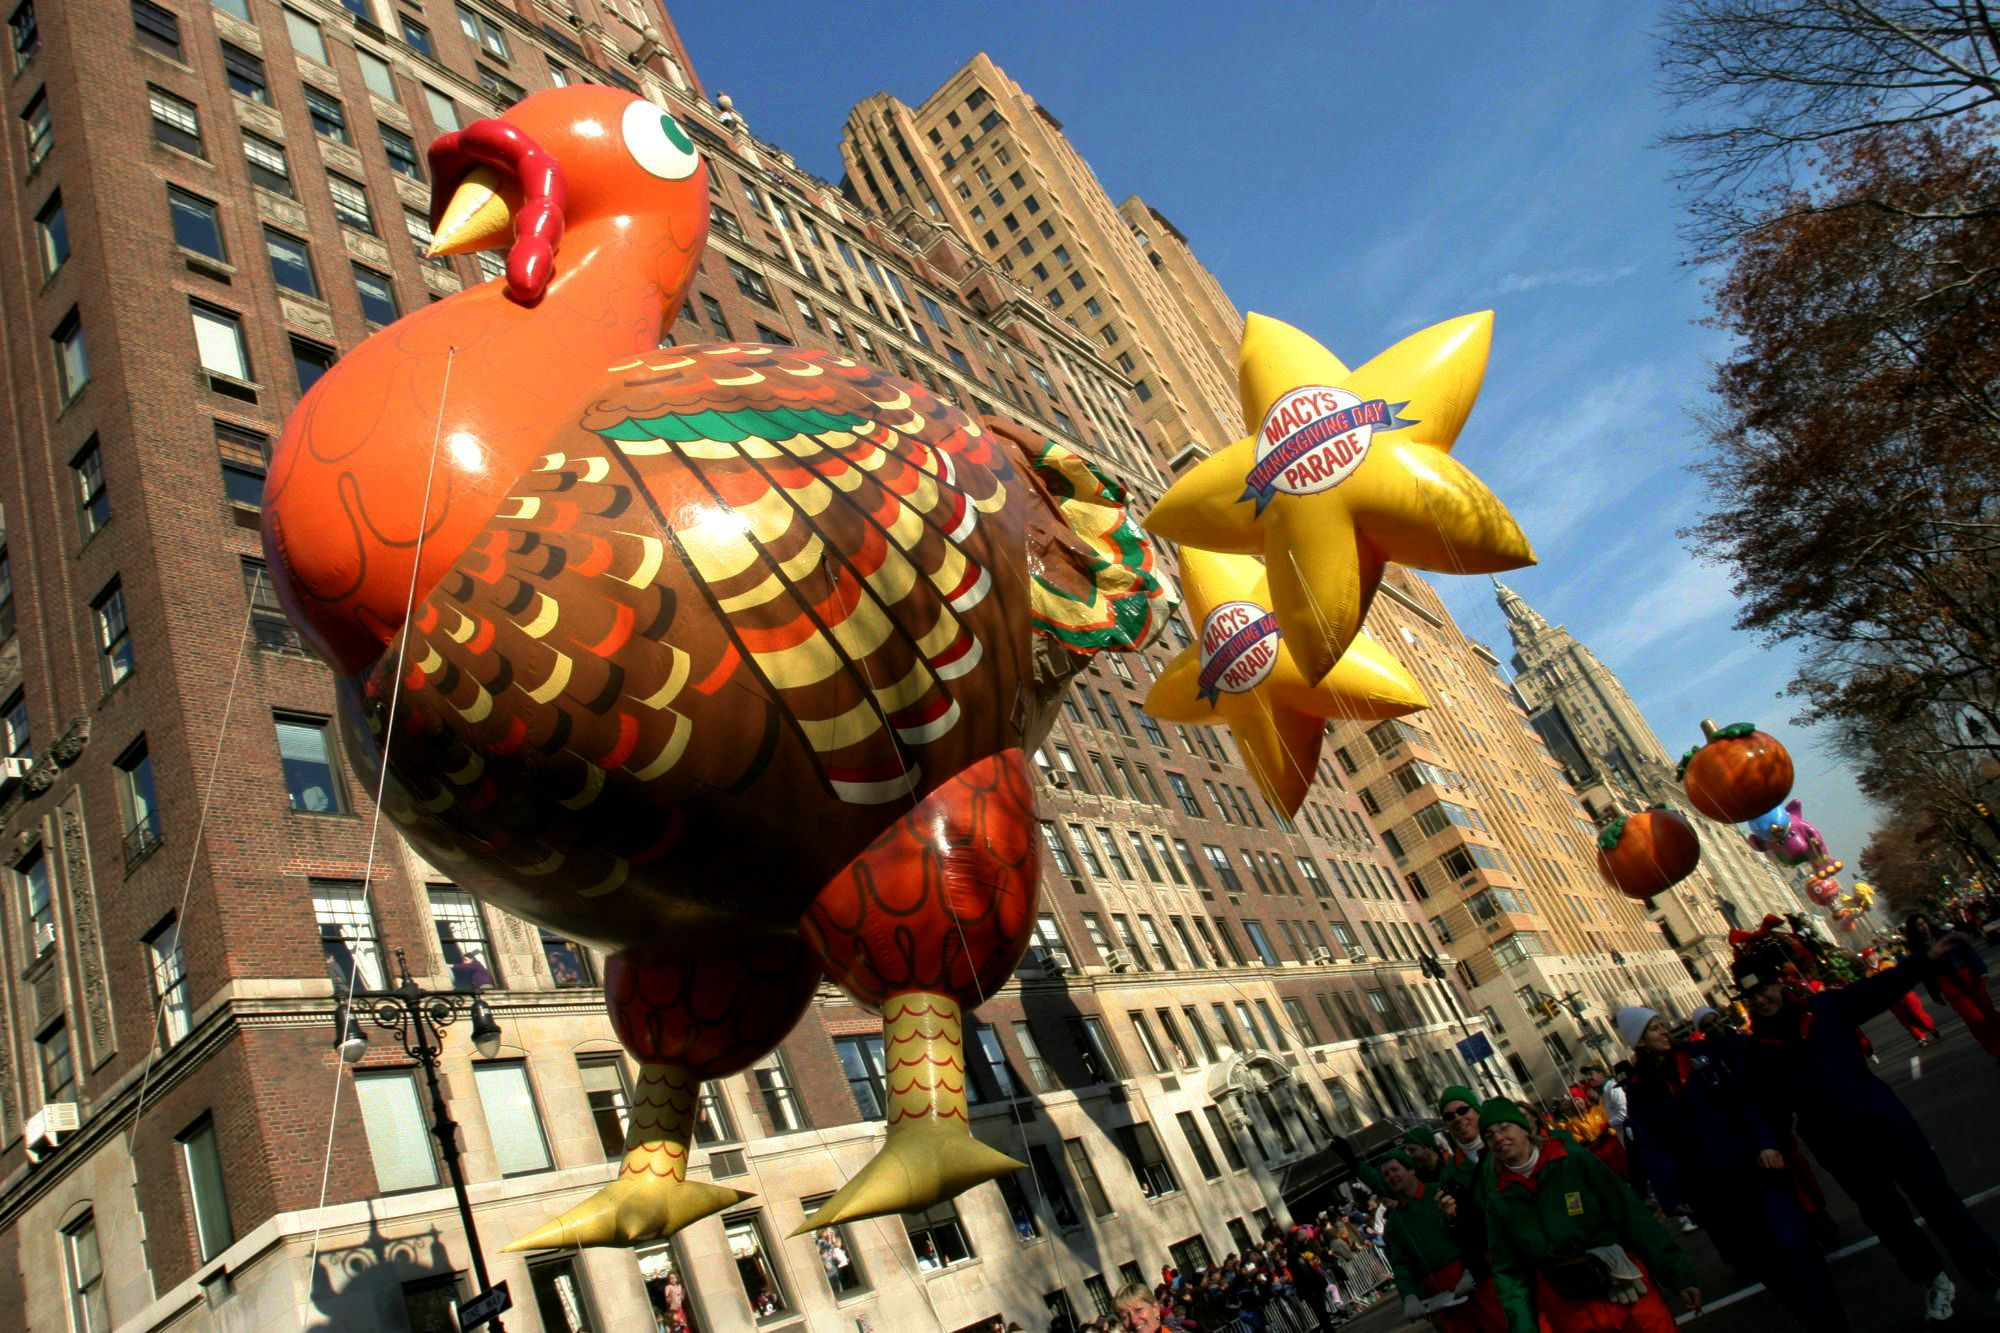 The Turkey Balloon Is Seen Coming Down New York S Central Park West At The Sta Thanksgiving Day Parade Macys Thanksgiving Parade Macy S Thanksgiving Day Parade